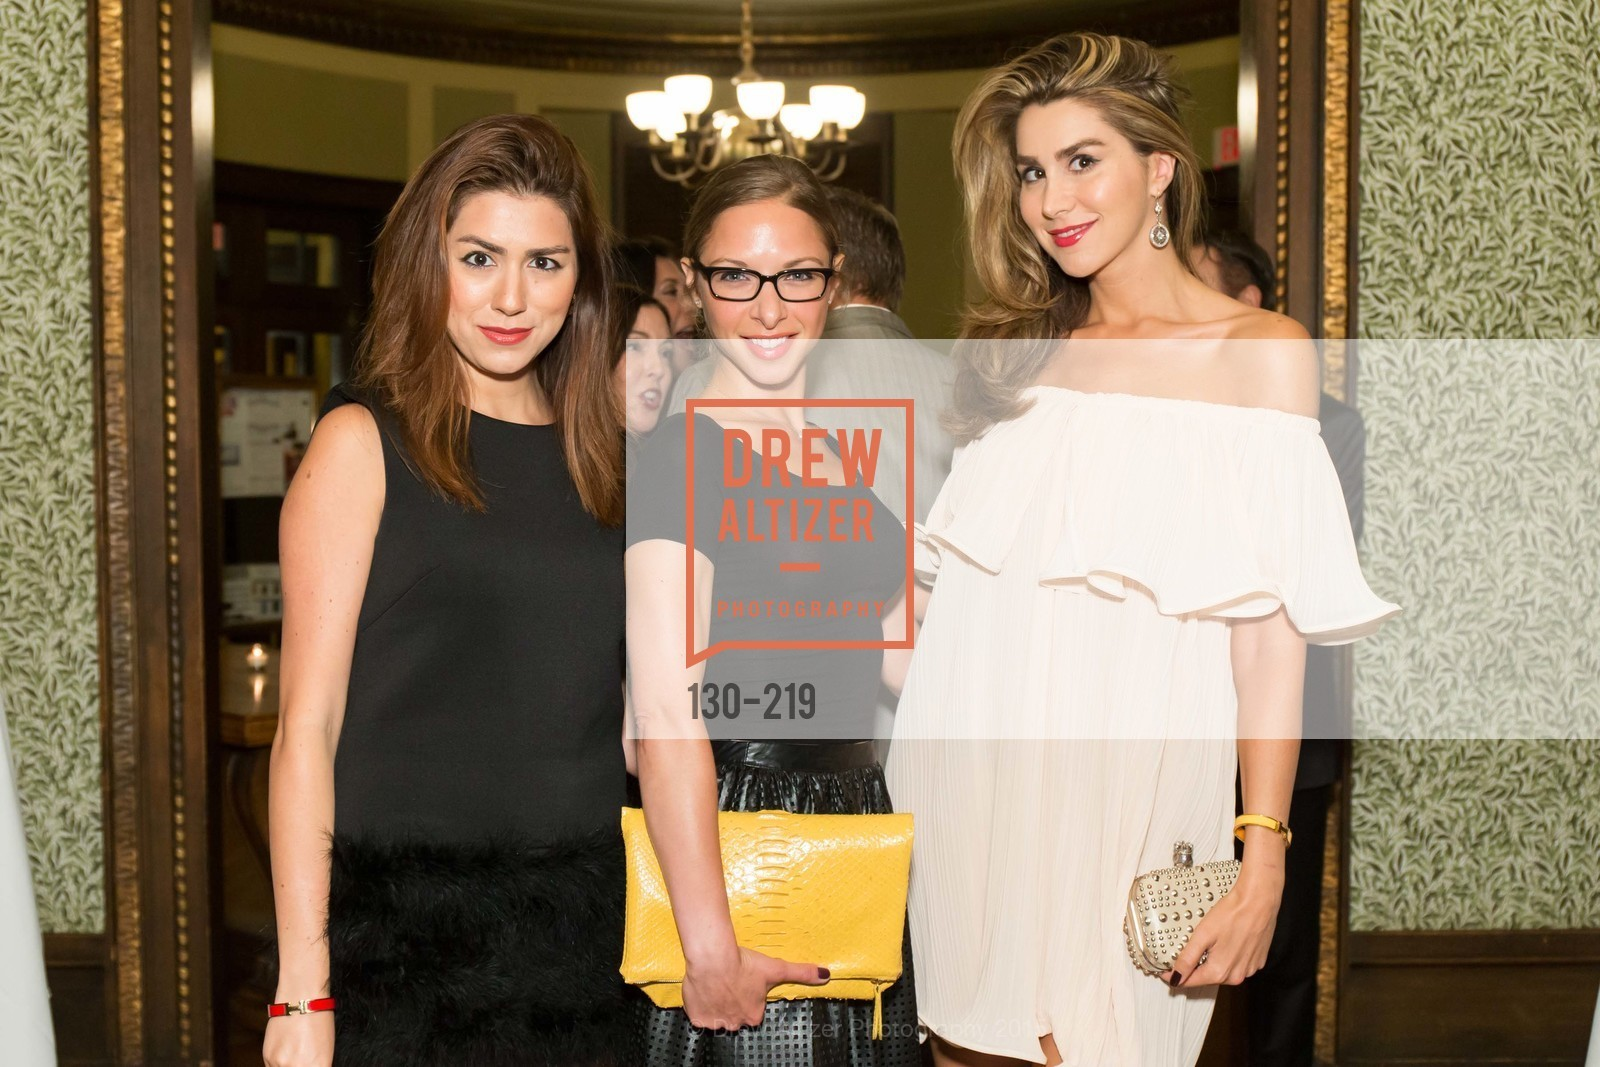 Roya Pakzad, Suzanne Rabicoff, Ronak Pakzad, Champagne Reception & Screening of Million Dollar Listing San Francisco, University Club. 800 Powell St, August 5th, 2015,Drew Altizer, Drew Altizer Photography, full-service agency, private events, San Francisco photographer, photographer california